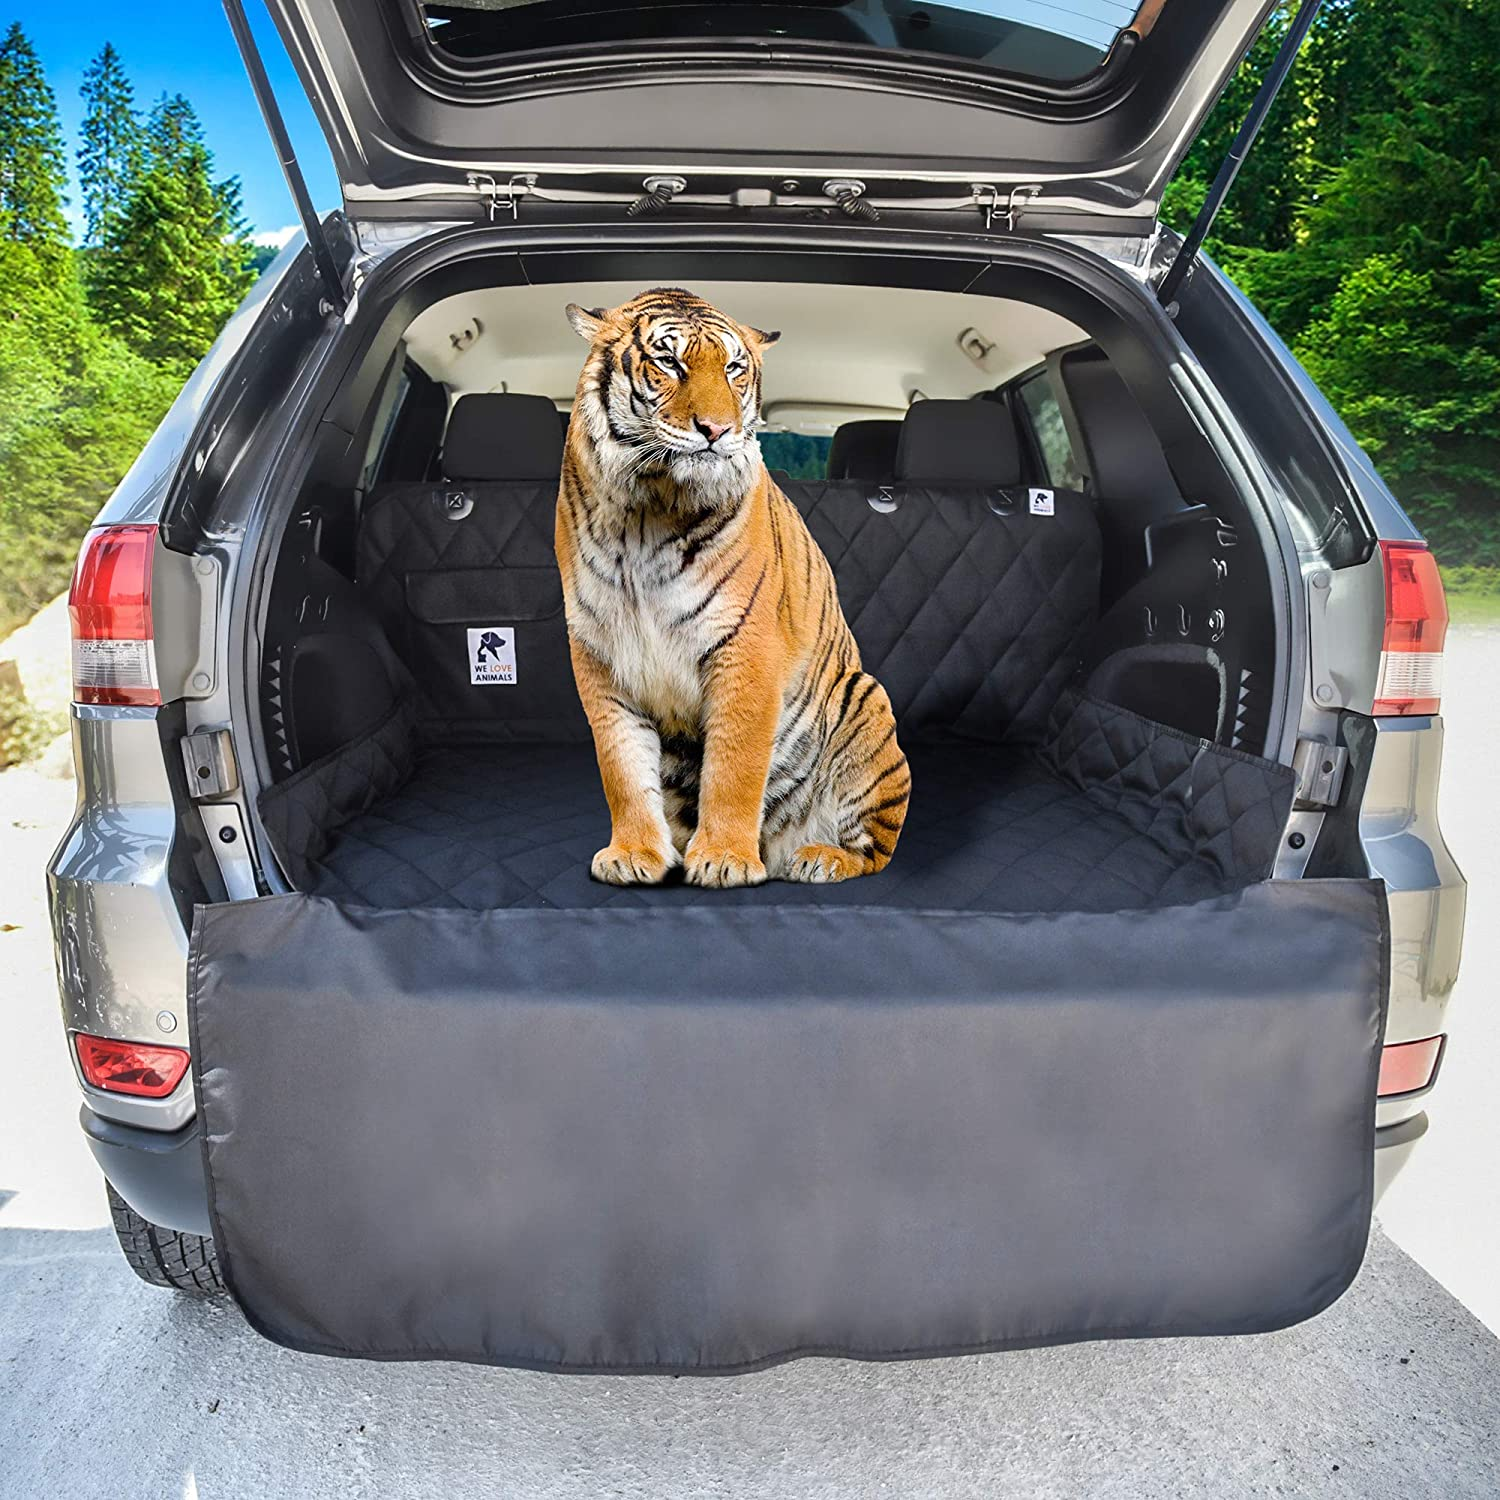 Dog Car Seat Cover Cargo Liner rear Bench Convertible Hammock Shaped Comfort Accessory for Cars, SUVs, Trucks Carriers. Waterproof, Nonslip, Washable Pet Backseat Protector, Pets Blanket Bag